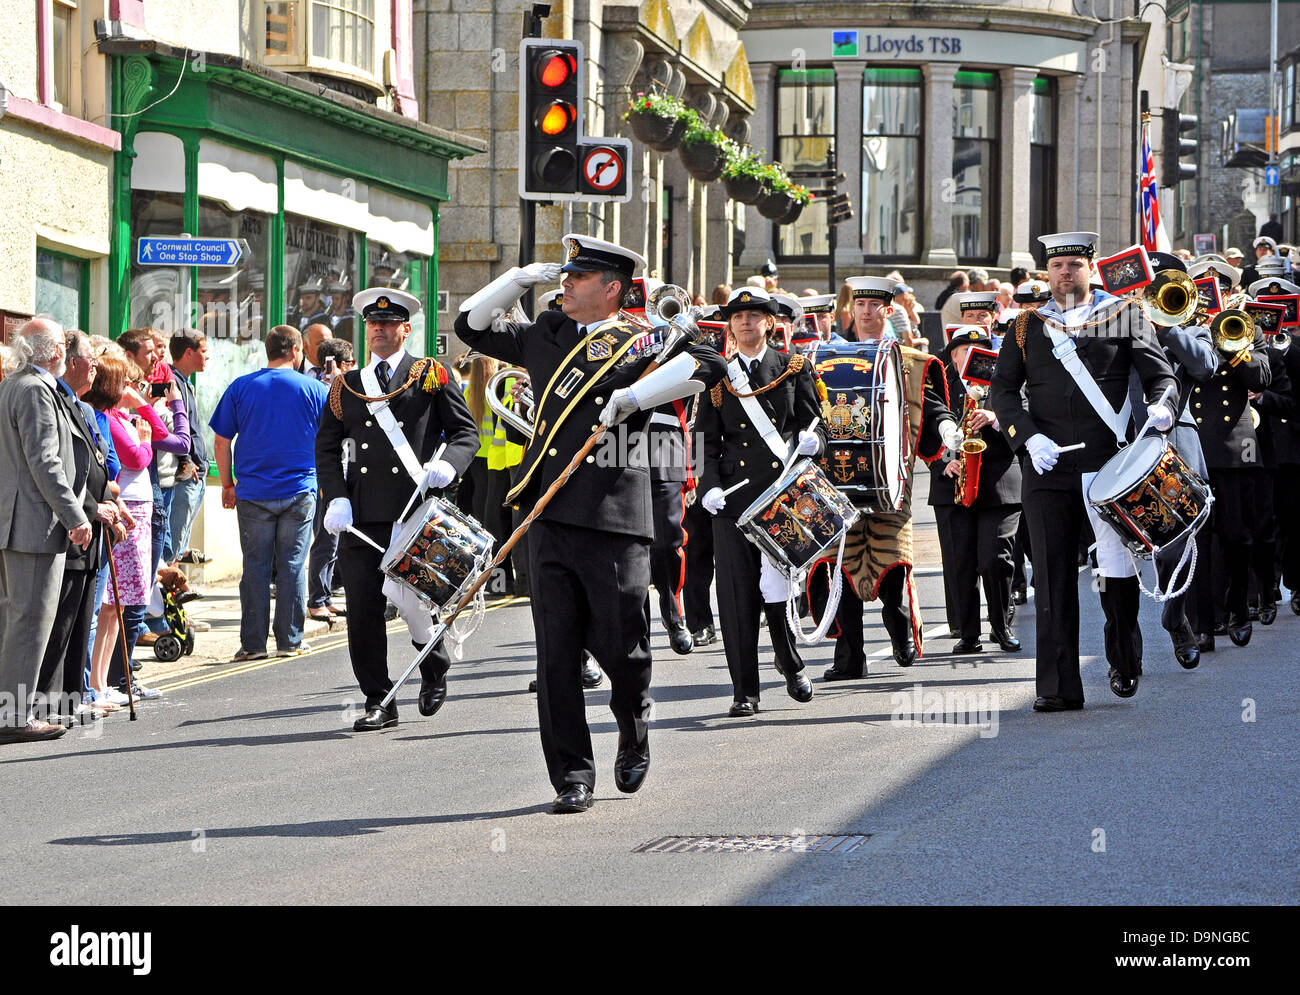 The Royal Navy band marching through the streets of Helston in Cornwall on the ' freedom of the town day ' - Stock Image